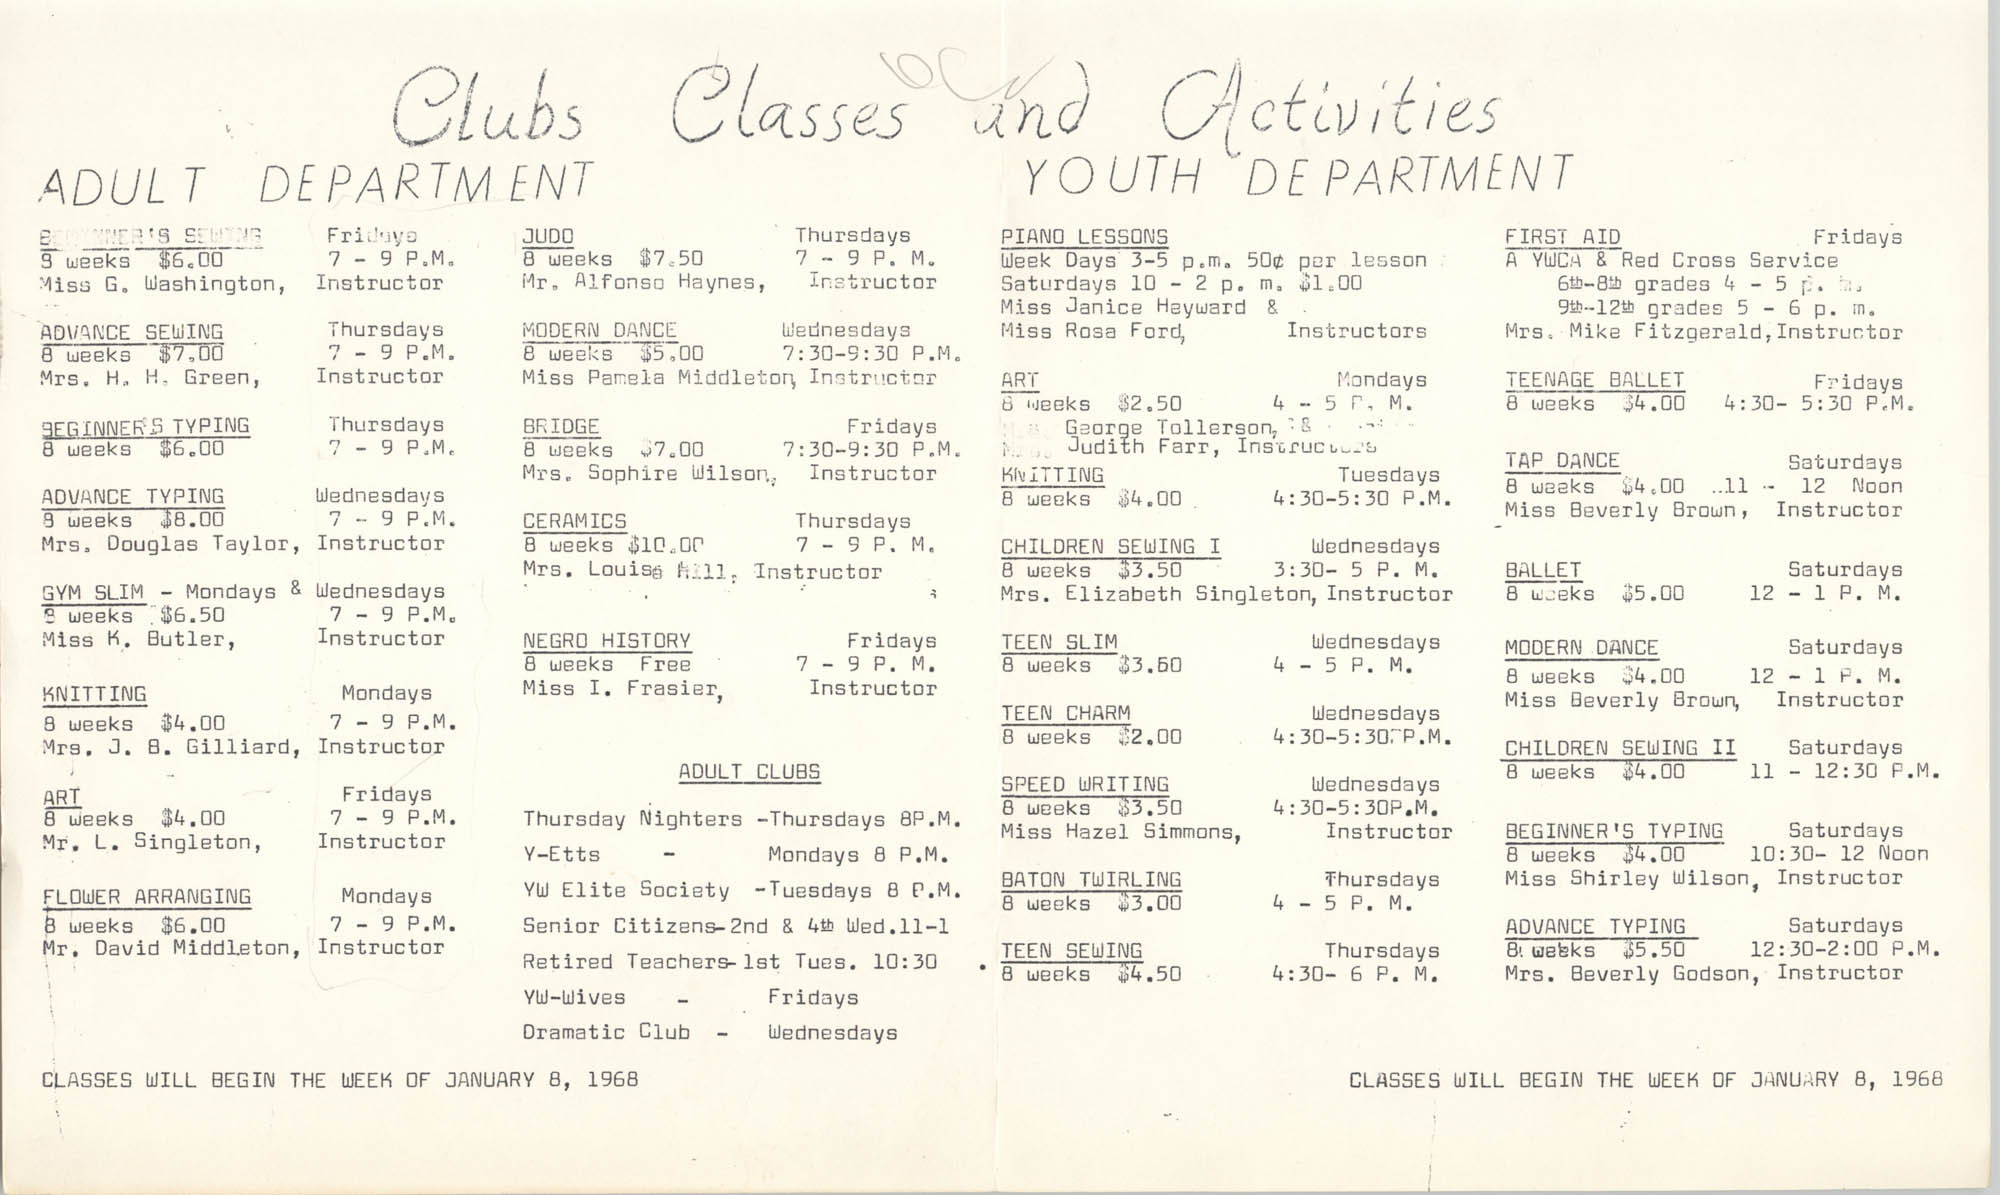 Clubs Classes and Activities, Coming Street Y.W.C.A., January 8, 1968